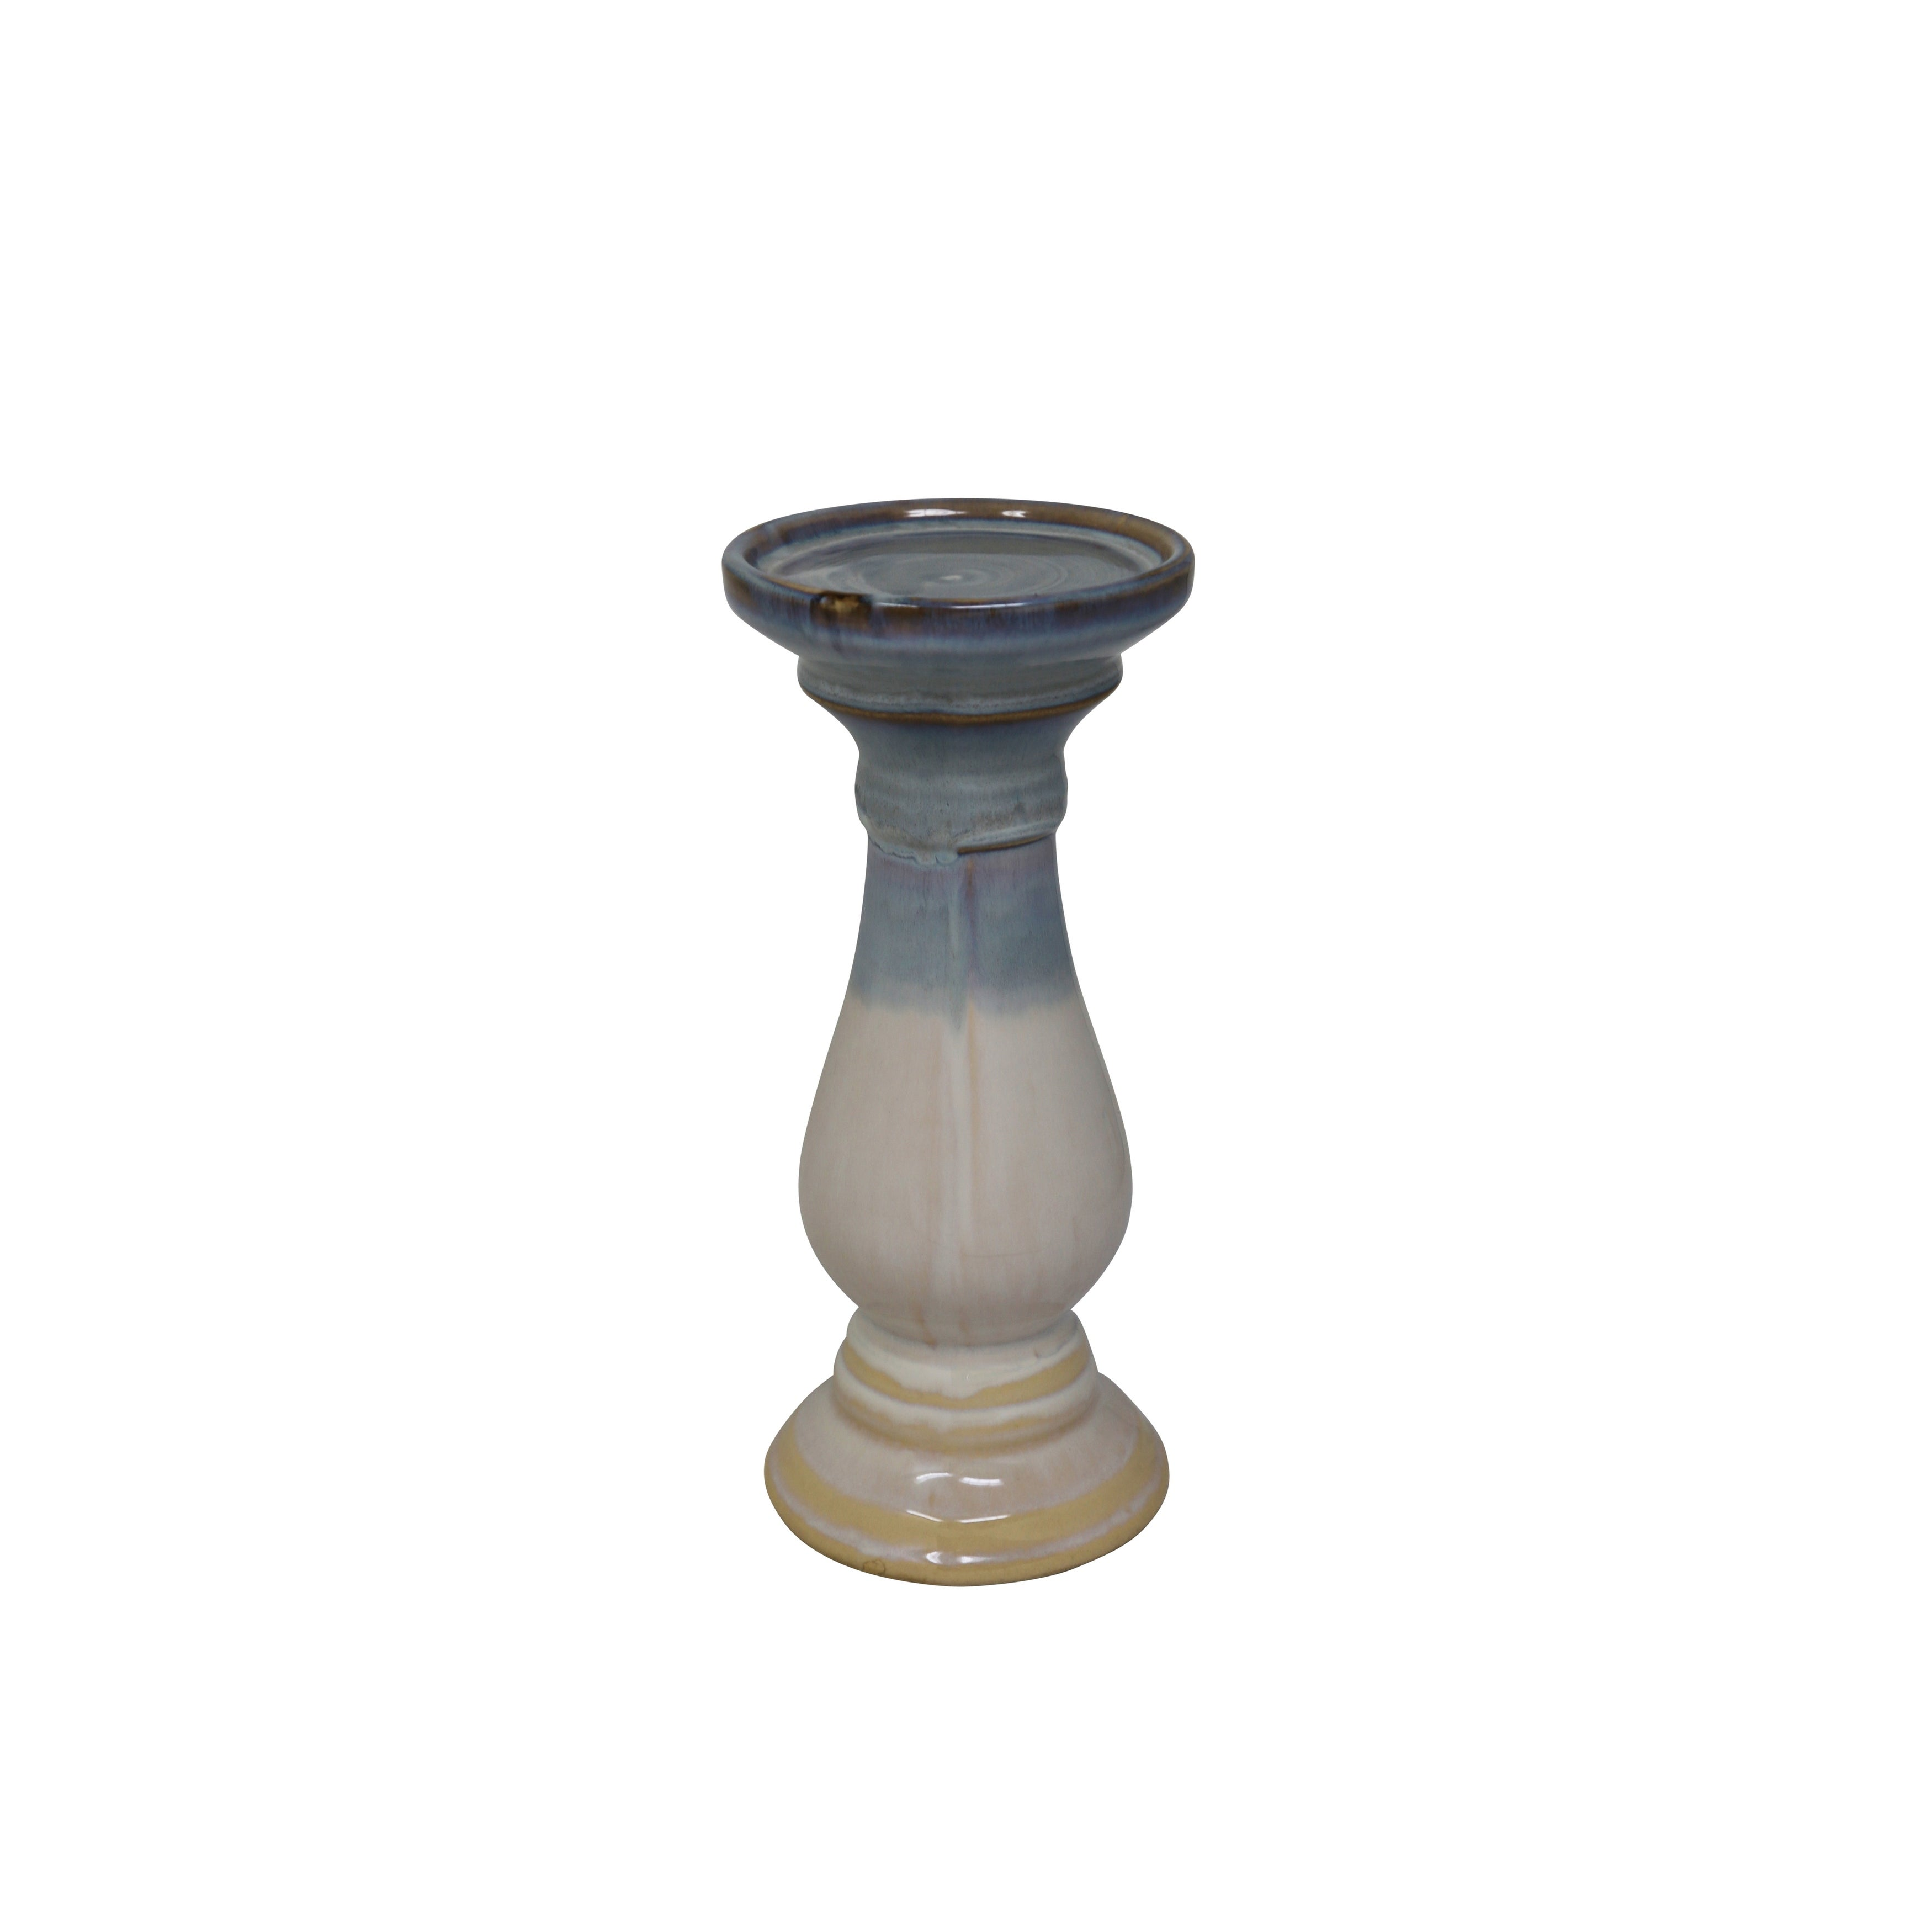 Dual Tone Decorative Ceramic Candle Holder with Bellied Bottom, Small, Multicolor